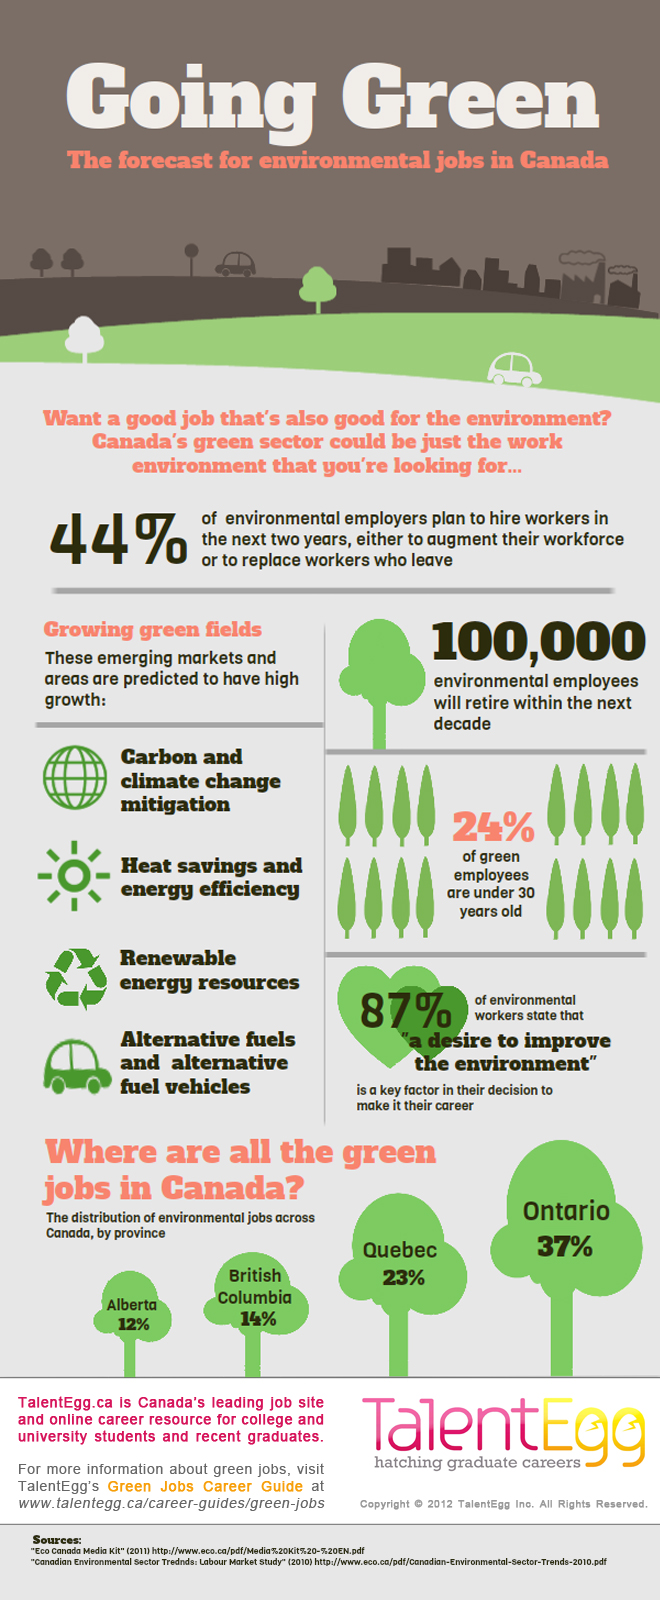 Going Green: Forecast For Environmental Jobs In Canada